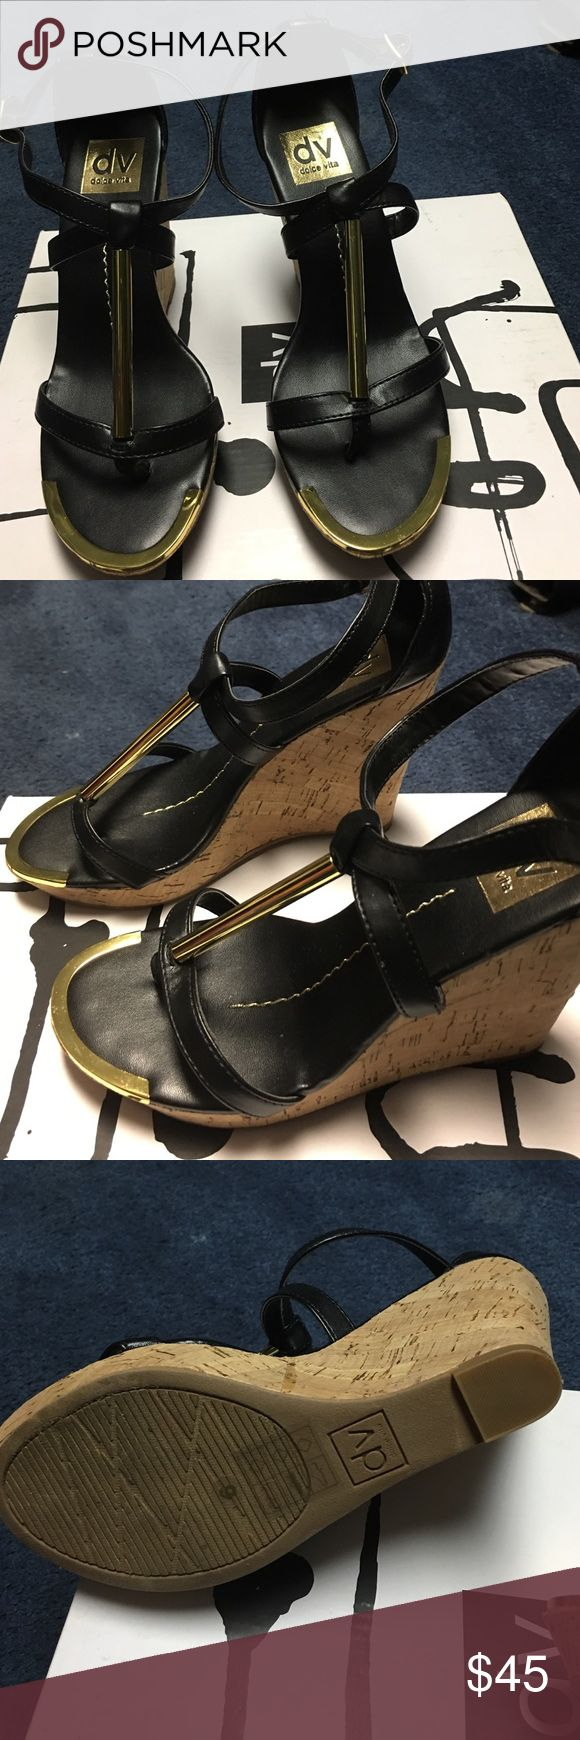 """New Dolce Vita Black Wedge. Gold tone accent. 6 Eye catching 4"""" wedges. Gold tone accents will make any outfit """"pop"""" - especially if all black. Size 6. Never Worn- As New Condition Dolce Vita Shoes Wedges"""